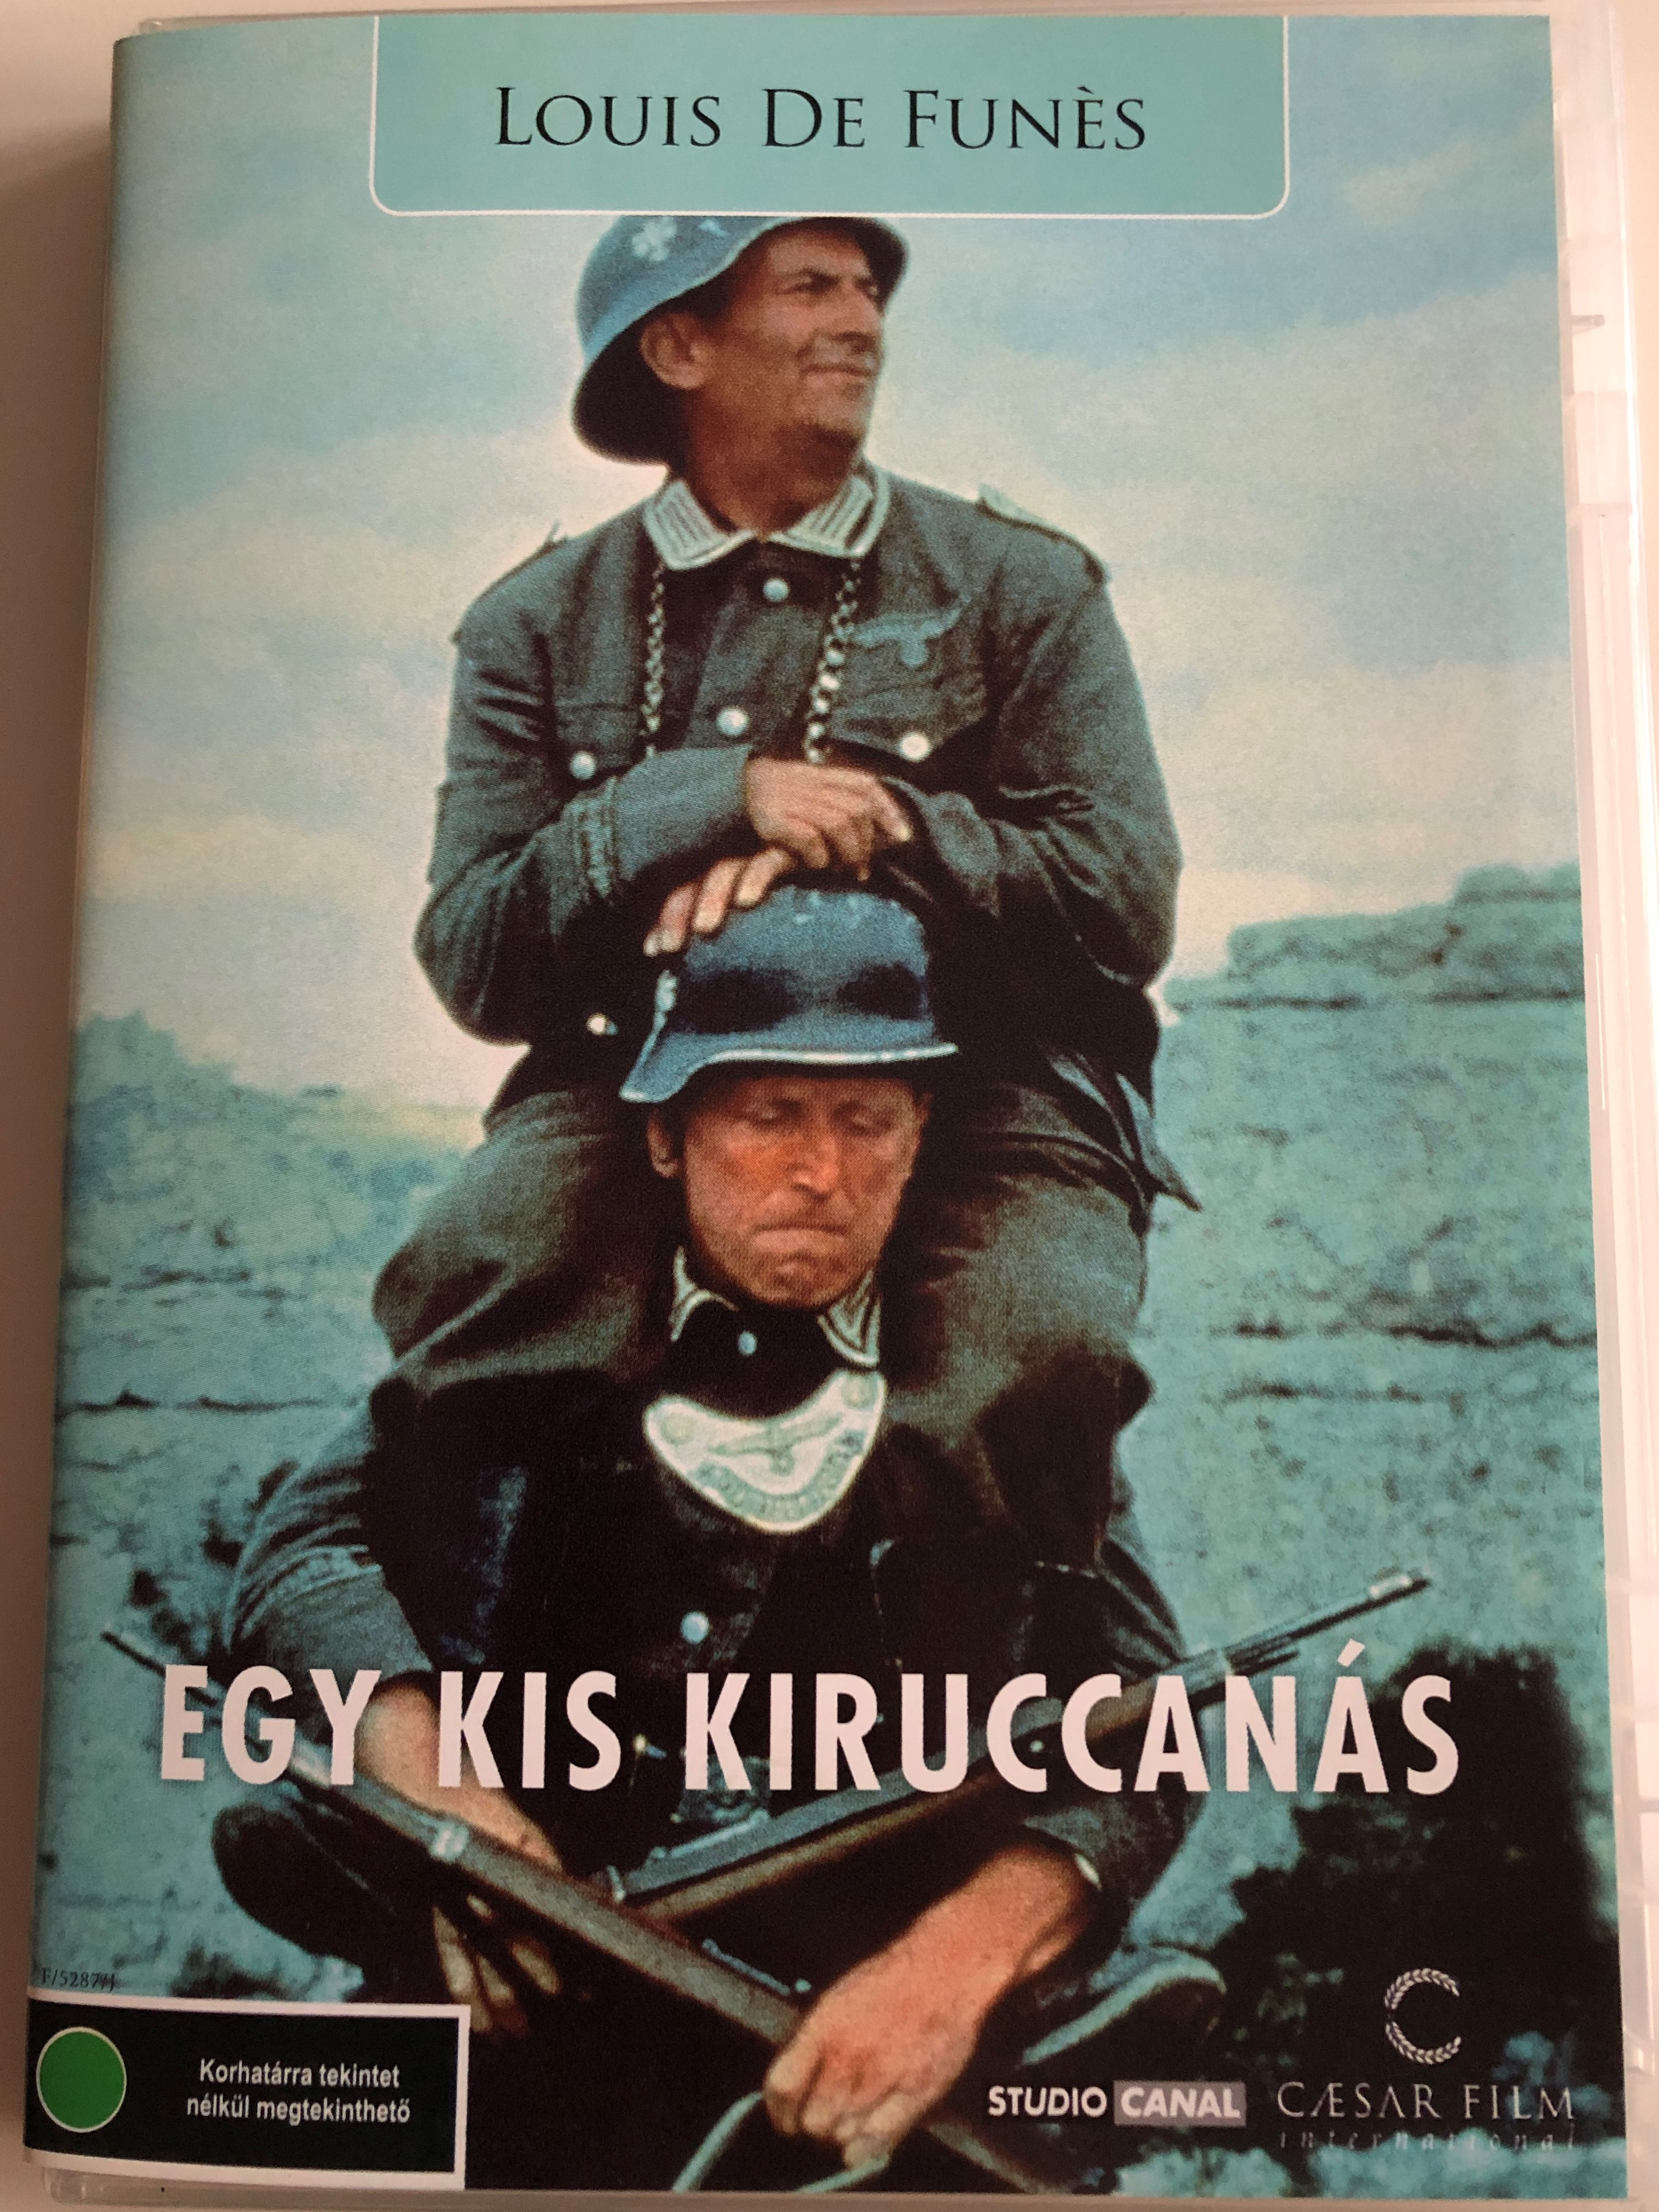 egy-kis-kiruccan-s-la-grande-vadrouille-dvd-1966-directed-by-g-rard-oury-1.jpg